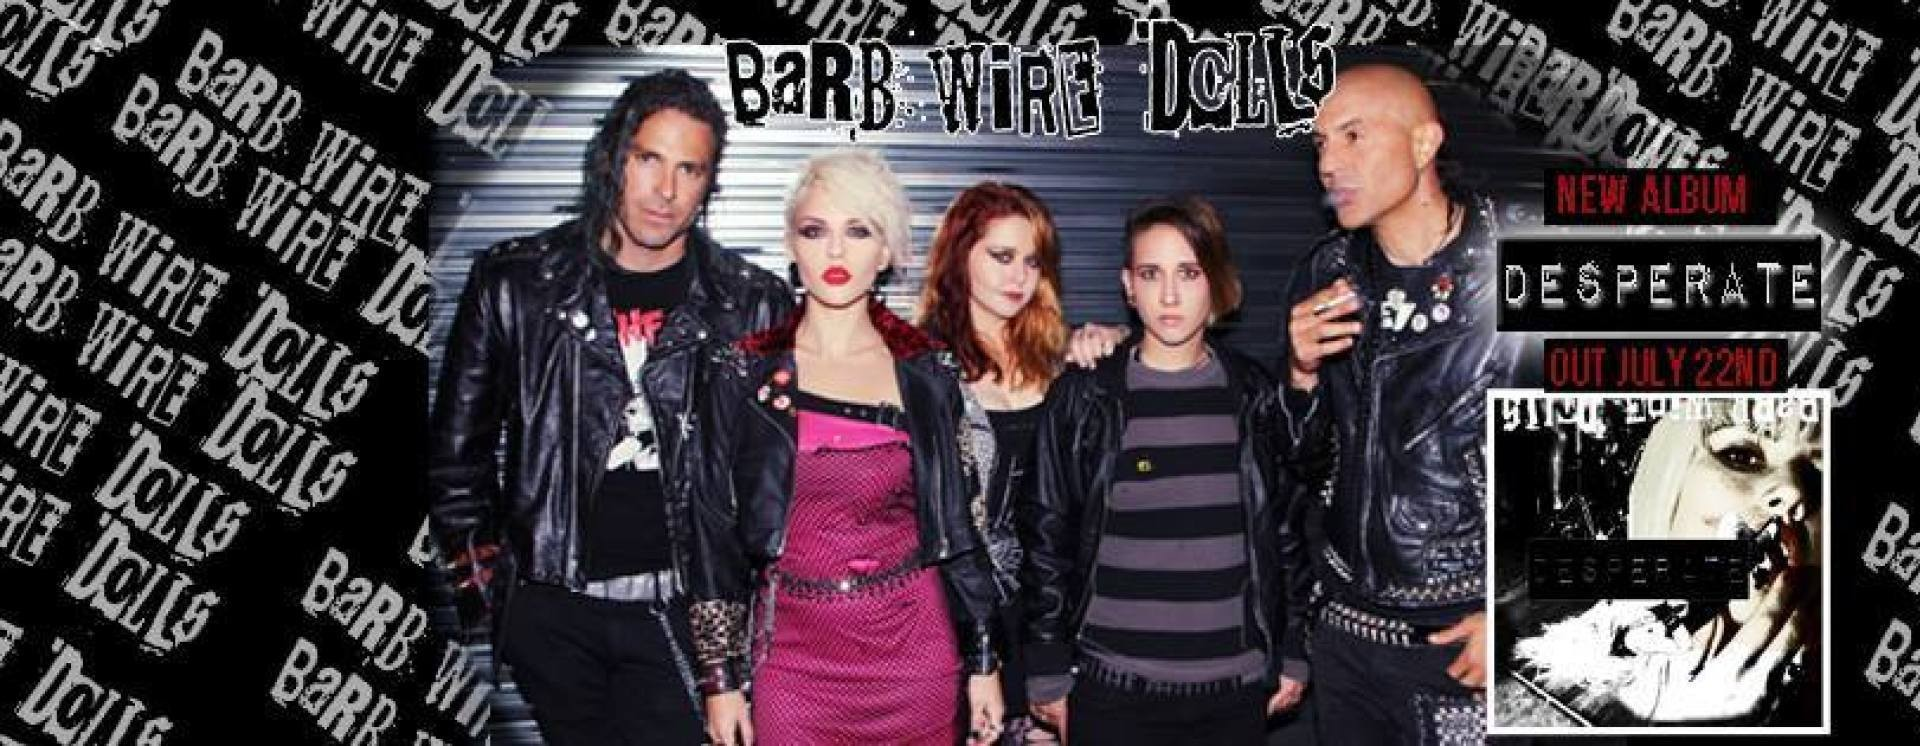 BARB WIRE DOLLS | ReverbNation